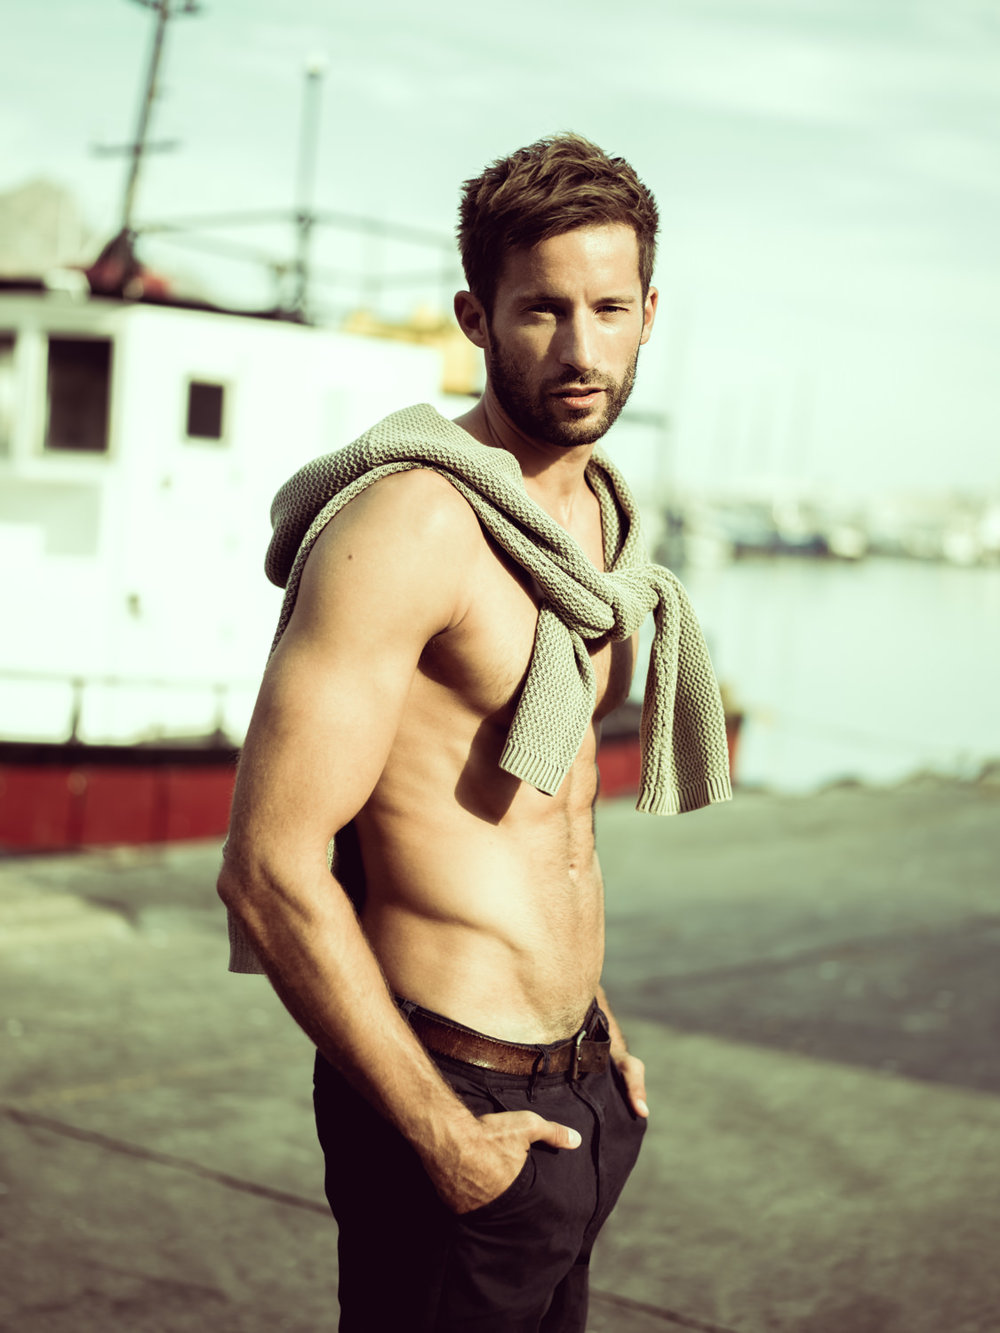 tim gerges the harbour - toby Cape Town Fashion photographer-4573040.jpg